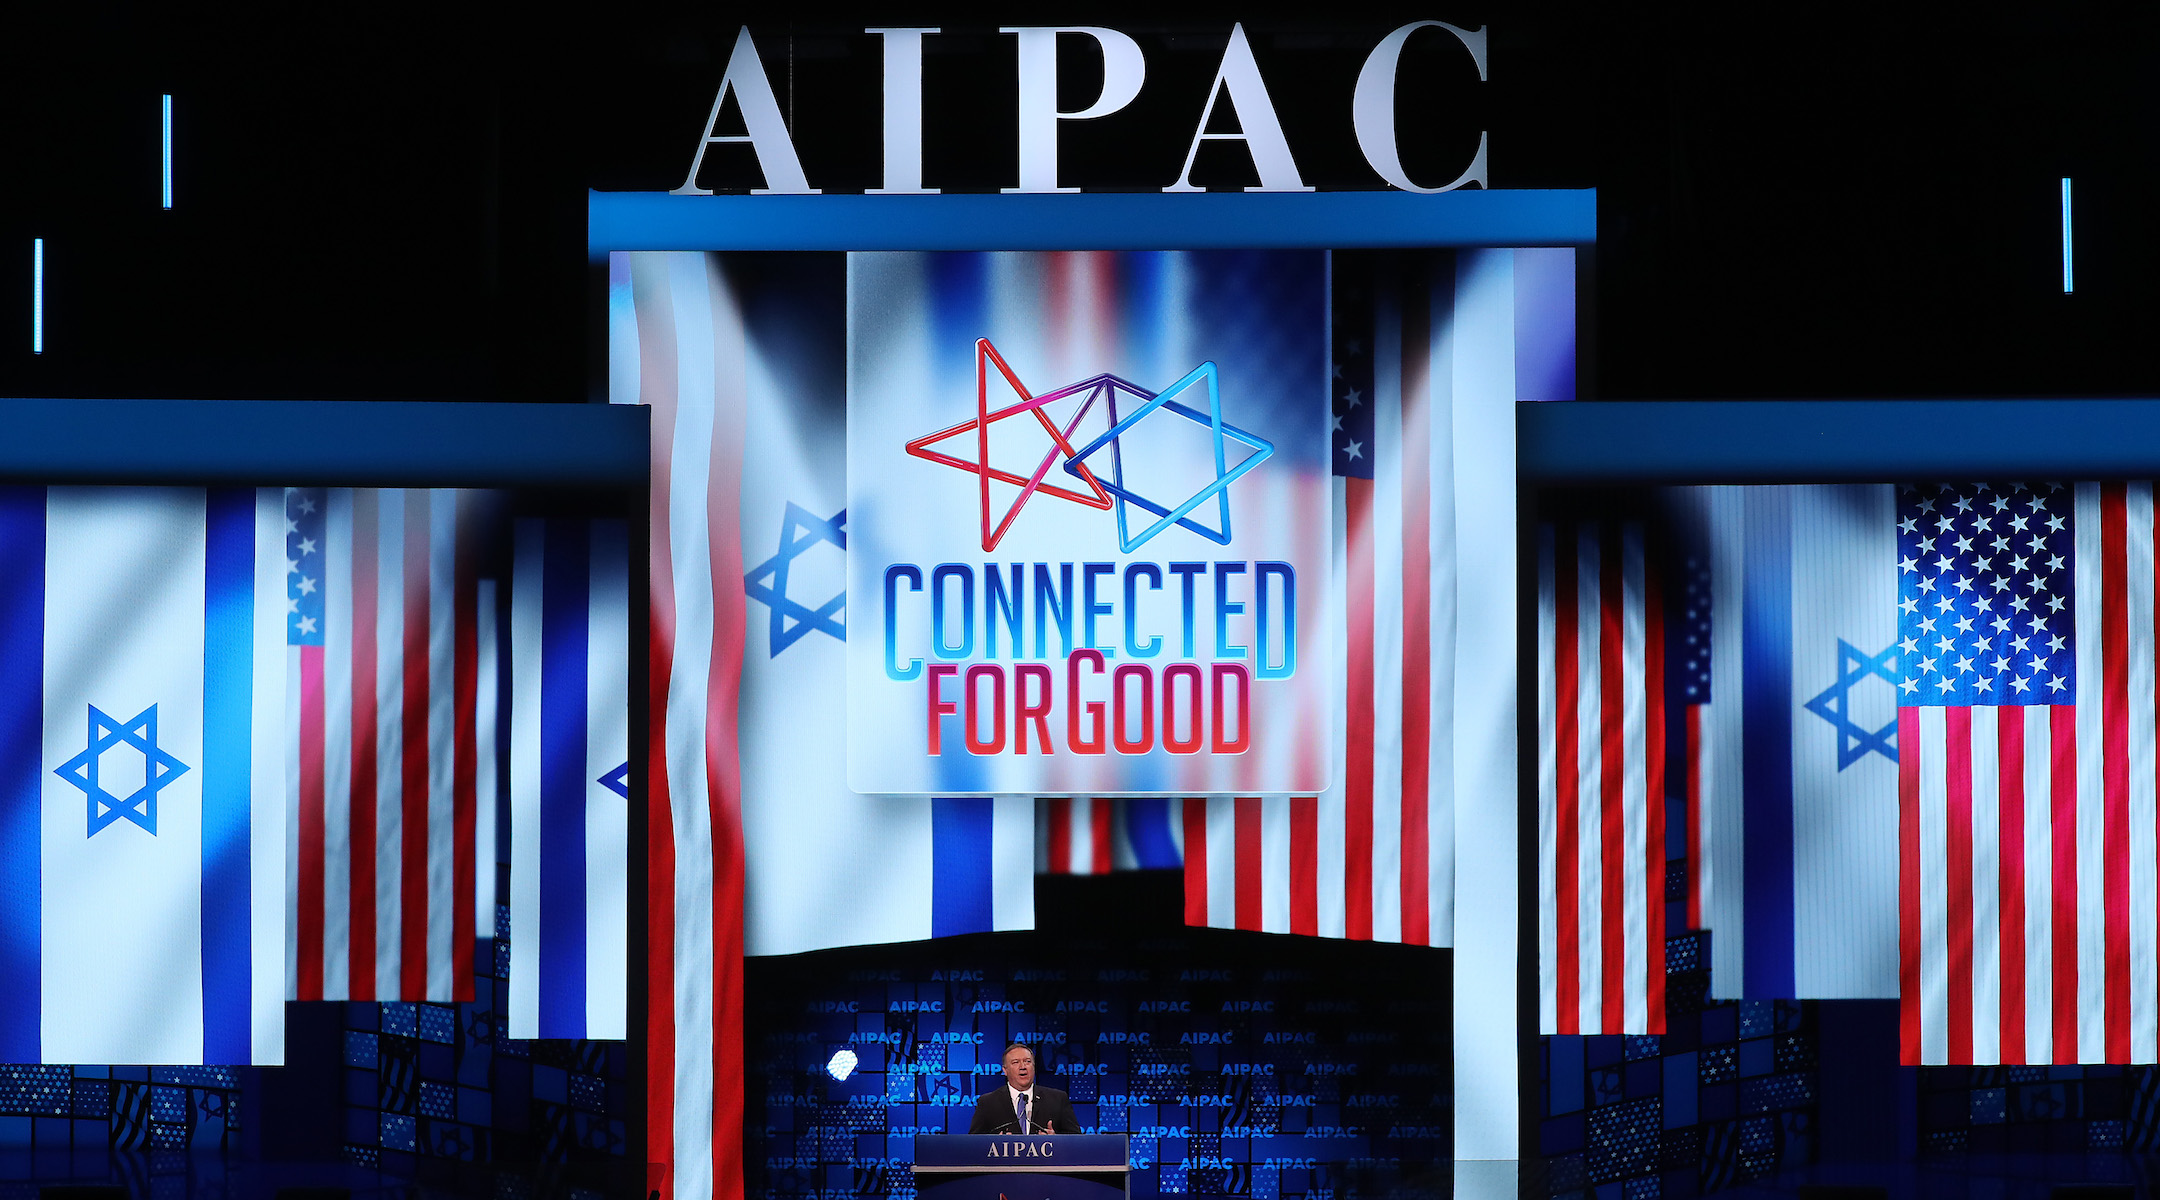 U.S. Secretary of State Mike Pompeo speaks at the annual AIPAC conference in Washington, D.C., March 25, 2019 (Photo/JTA-Mark Wilson-Getty Images)